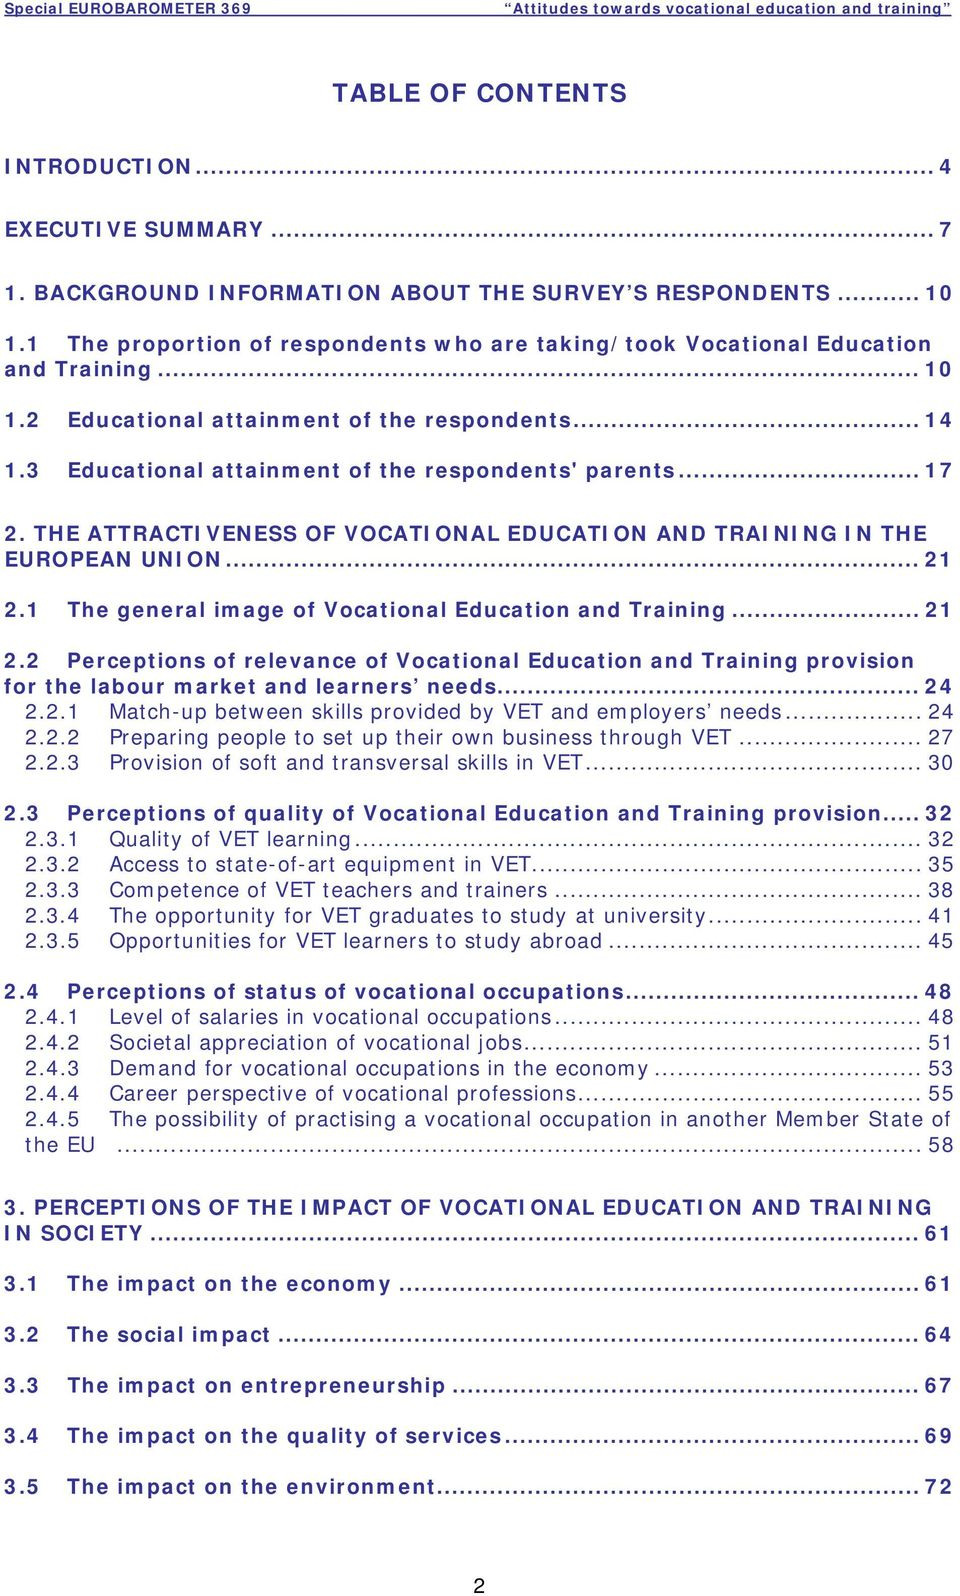 ... The general image of Vocational Education and Training.... Perceptions of relevance of Vocational Education and Training provision for the labour market and learners needs... 4.